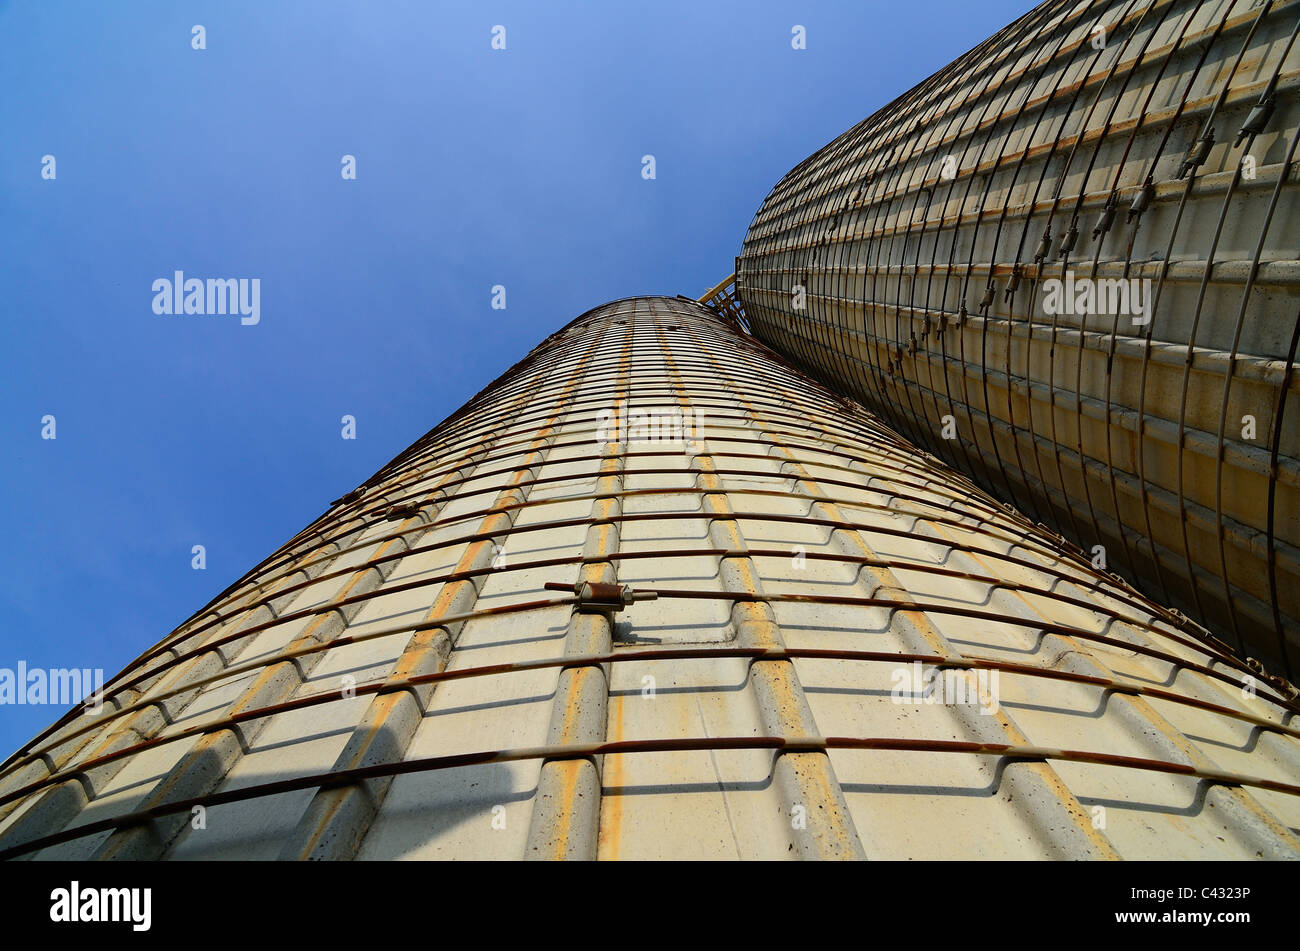 Abstract view of a cement plant - Stock Image